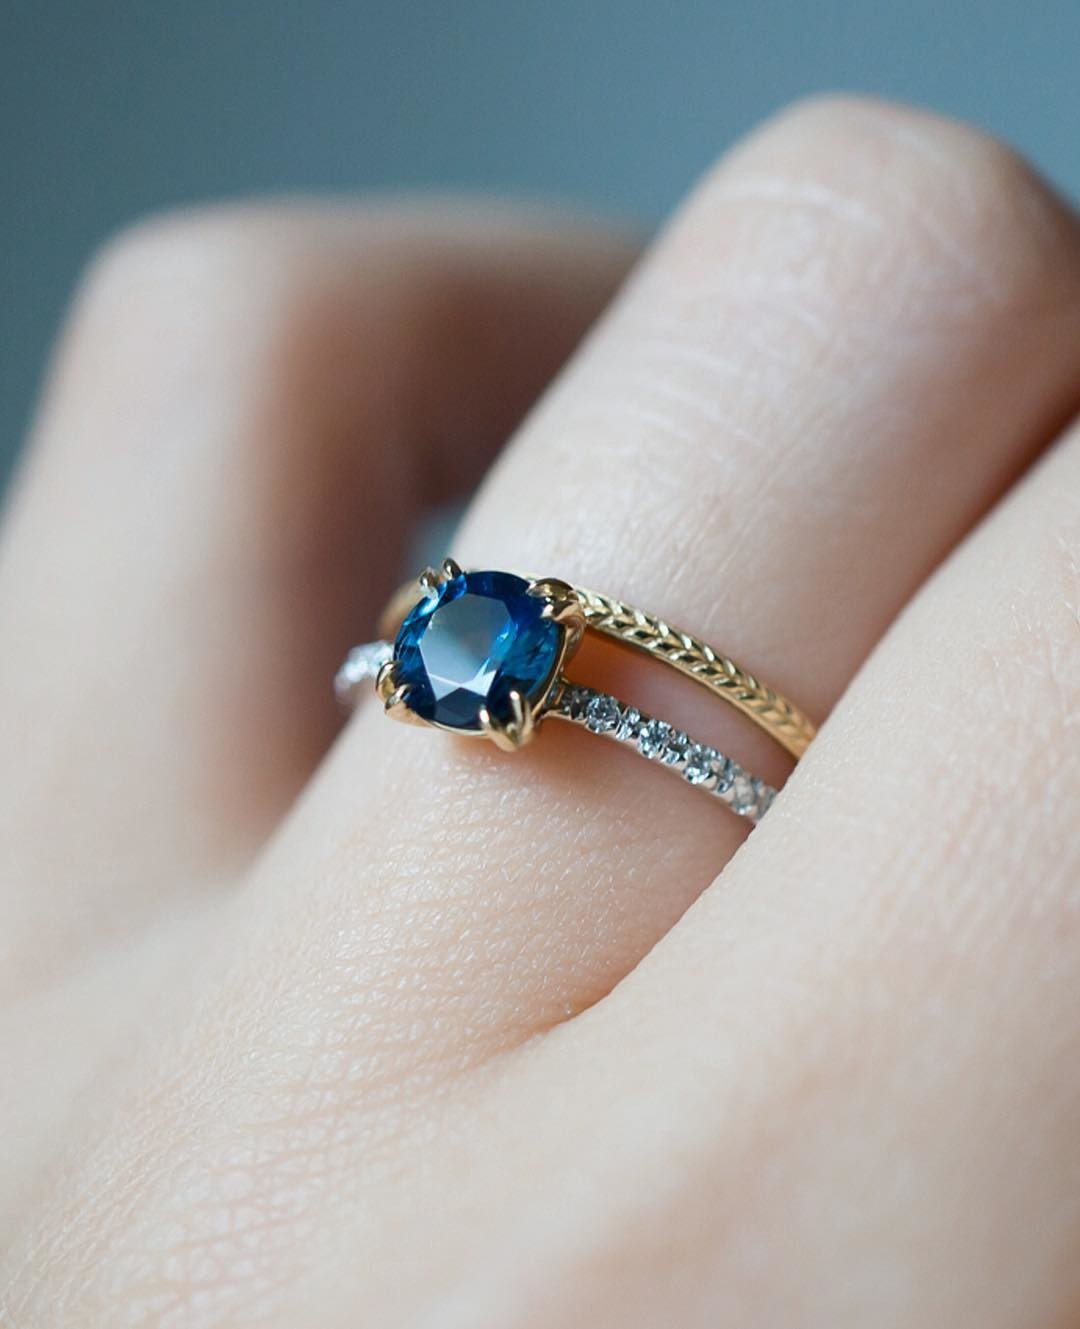 ✨💙💫 An ethical engagement ring of American Mined Sapphire from Montana and a marriage of recycled yellow, white gold and diamonds